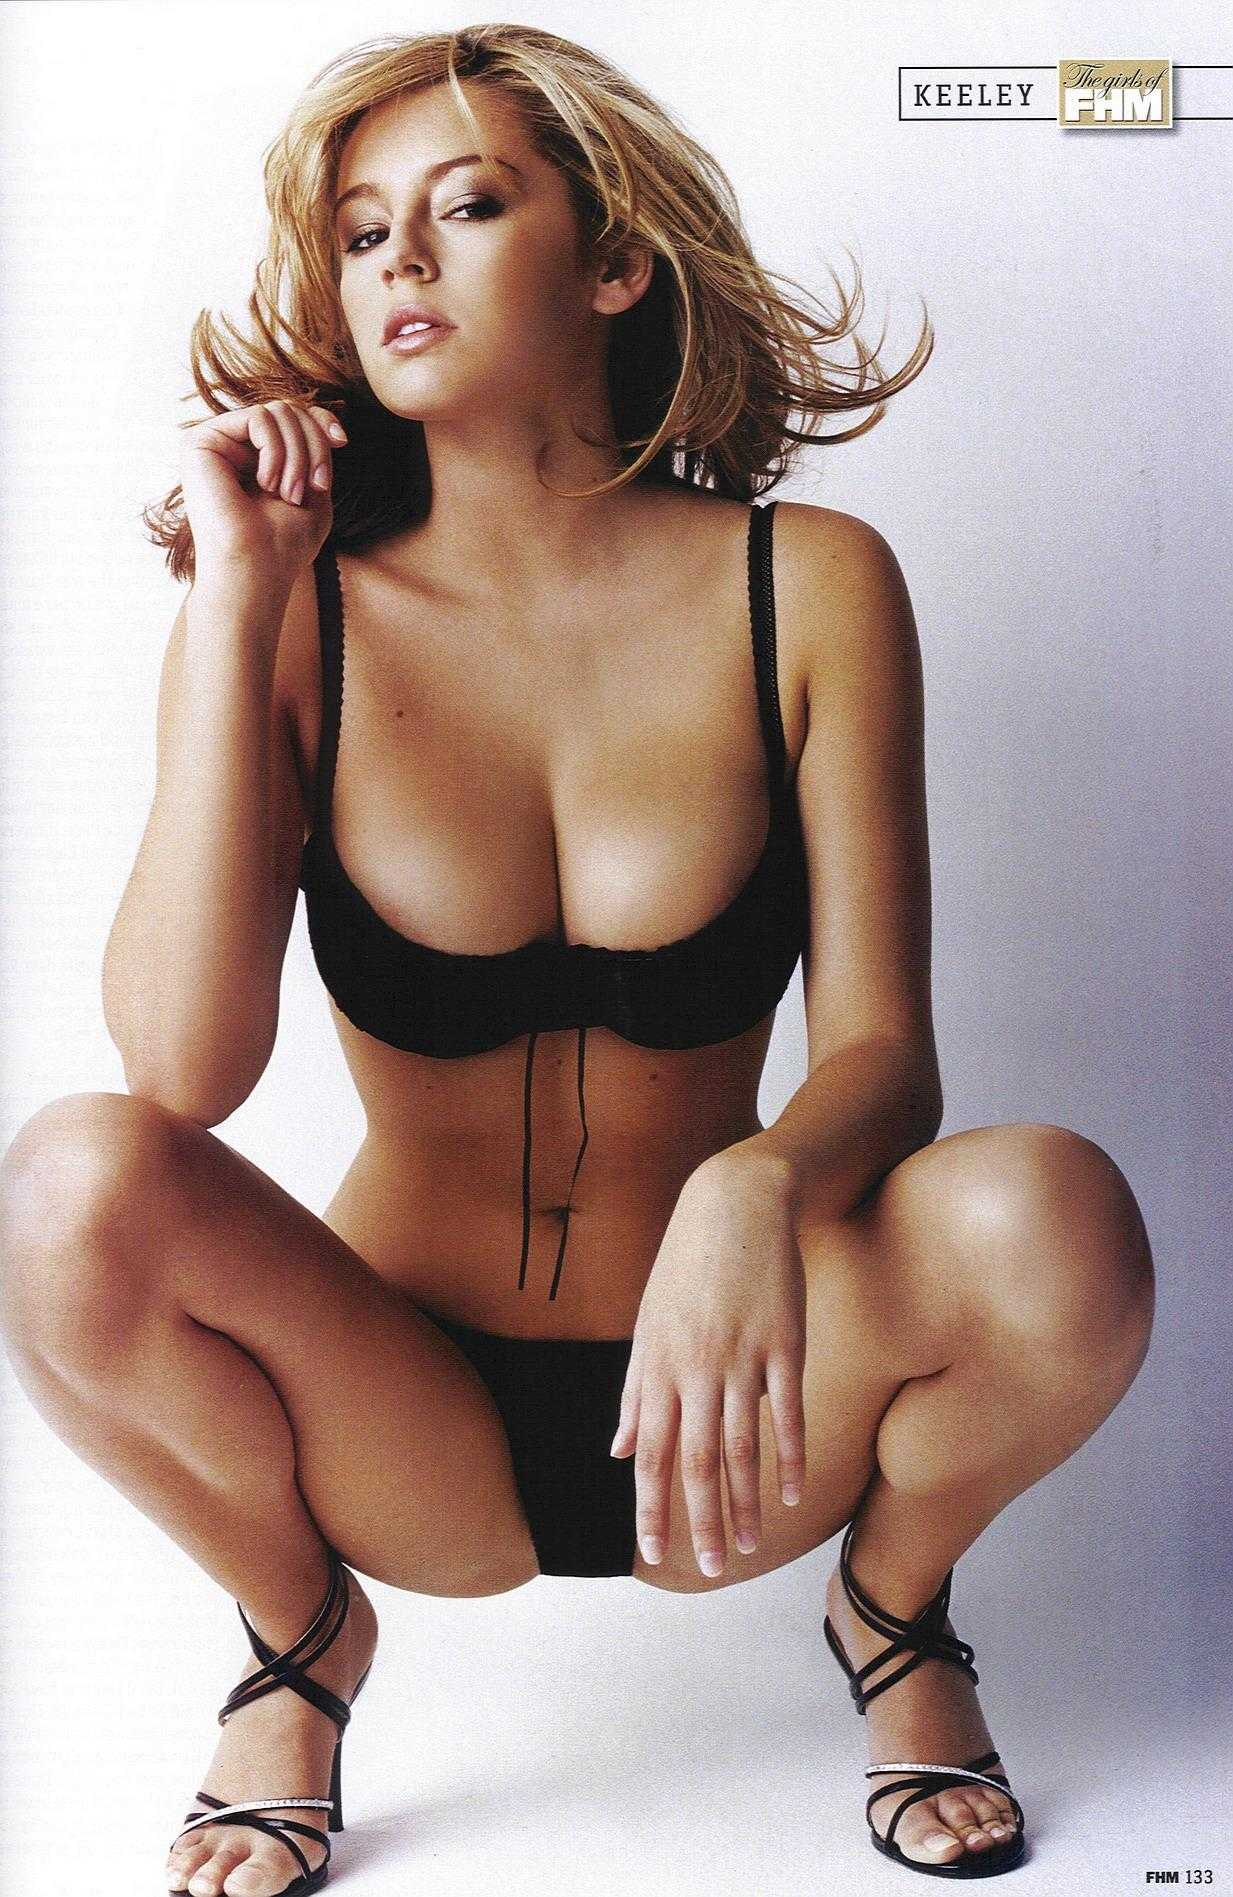 Keeley Hazell hot cleavage pic